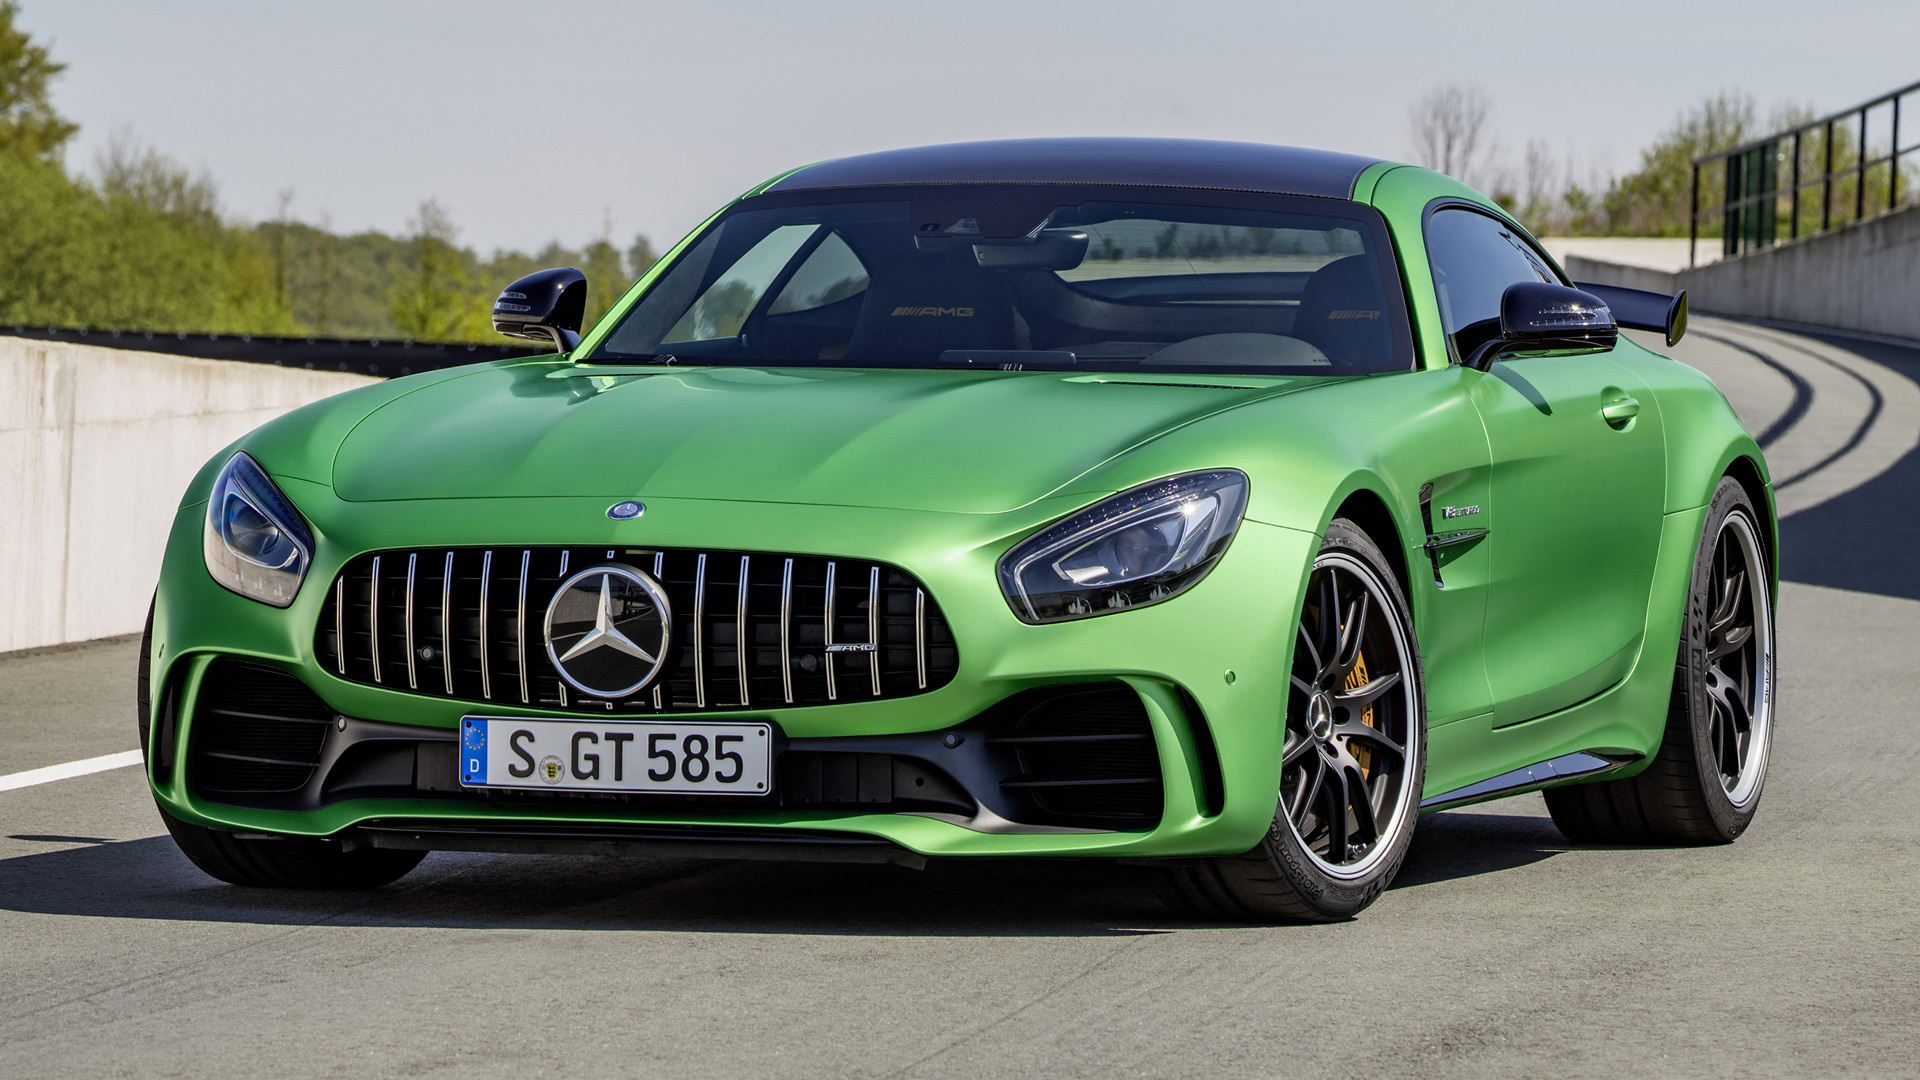 Mercedes Amg Gt Wallpaper: Mercedes-AMG GT R (2016) Wallpapers And HD Images